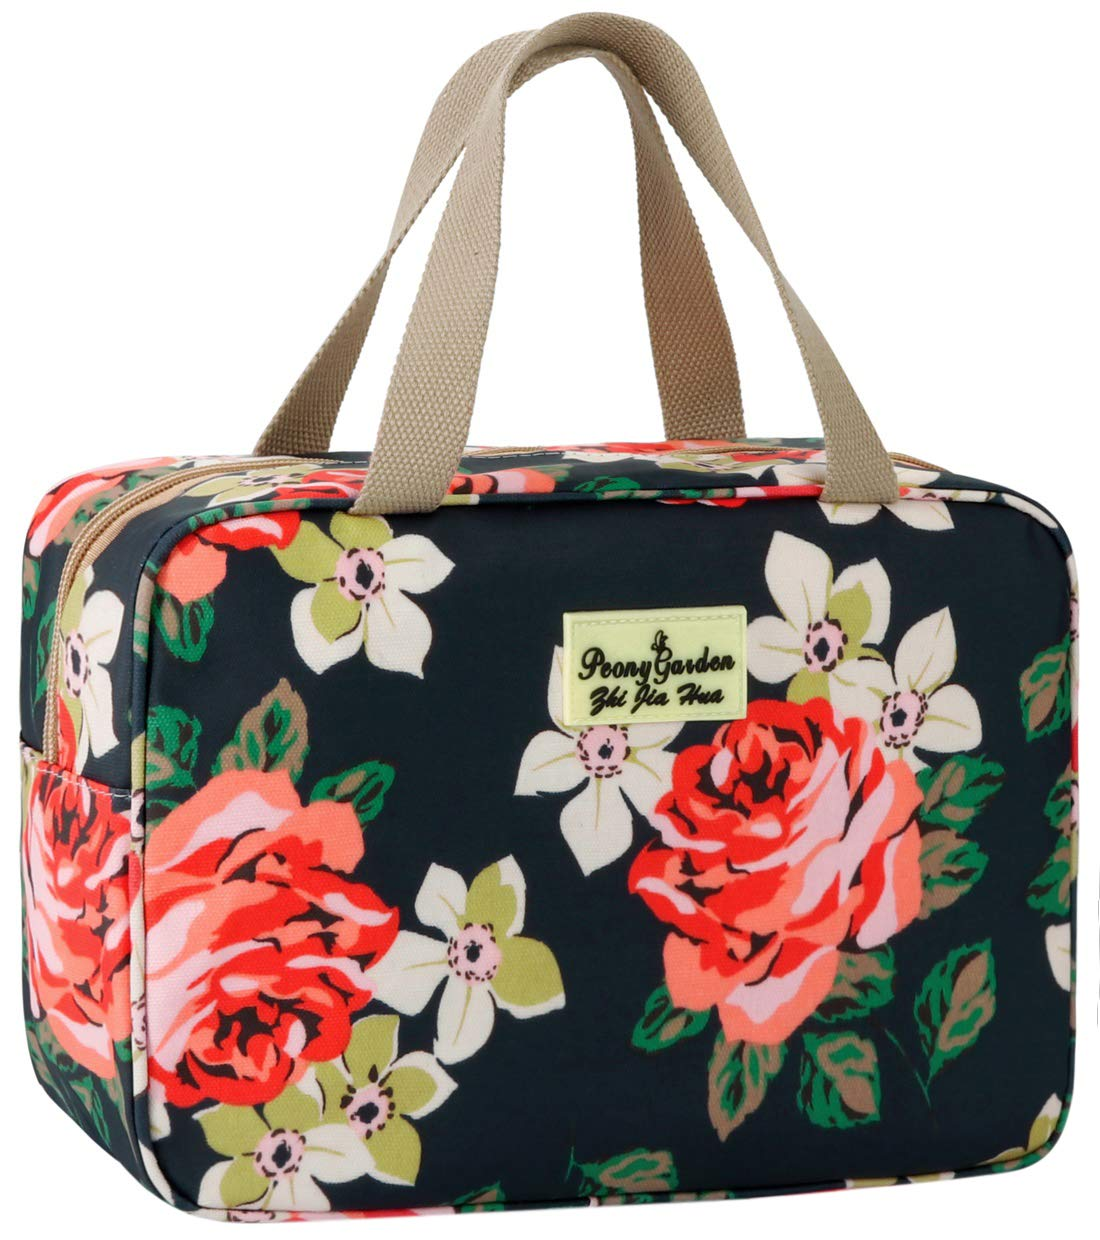 Toiletry Bag for Women Cosmetic Travel Bag Floral Cosmetic Case Large Travel Toiletry Bag for Girls Make Up Bag Navy Blue Brush Bags Reusable Toiletry Bag : Beauty